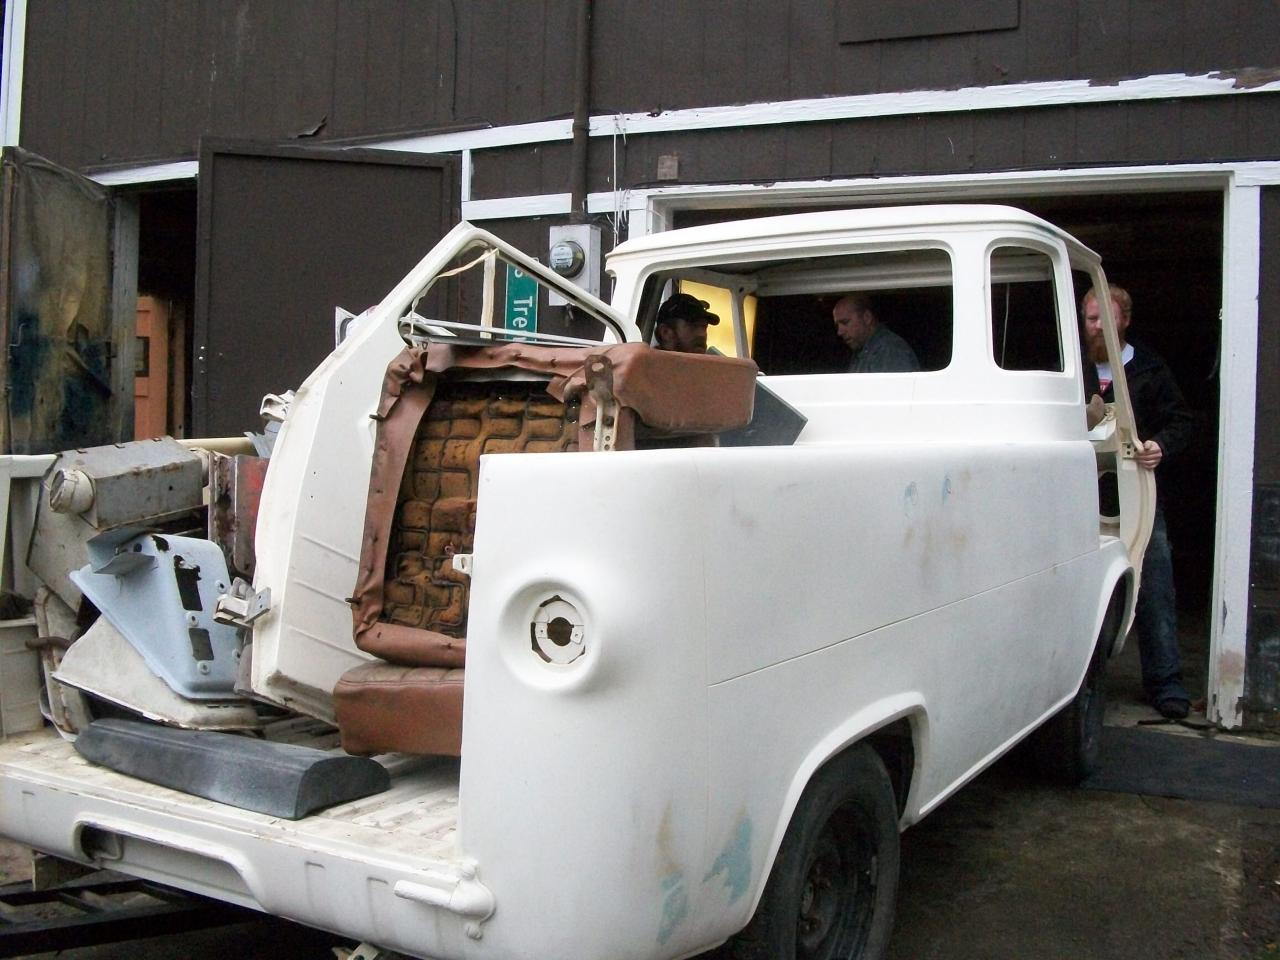 51 dodge pu, 78 e window,